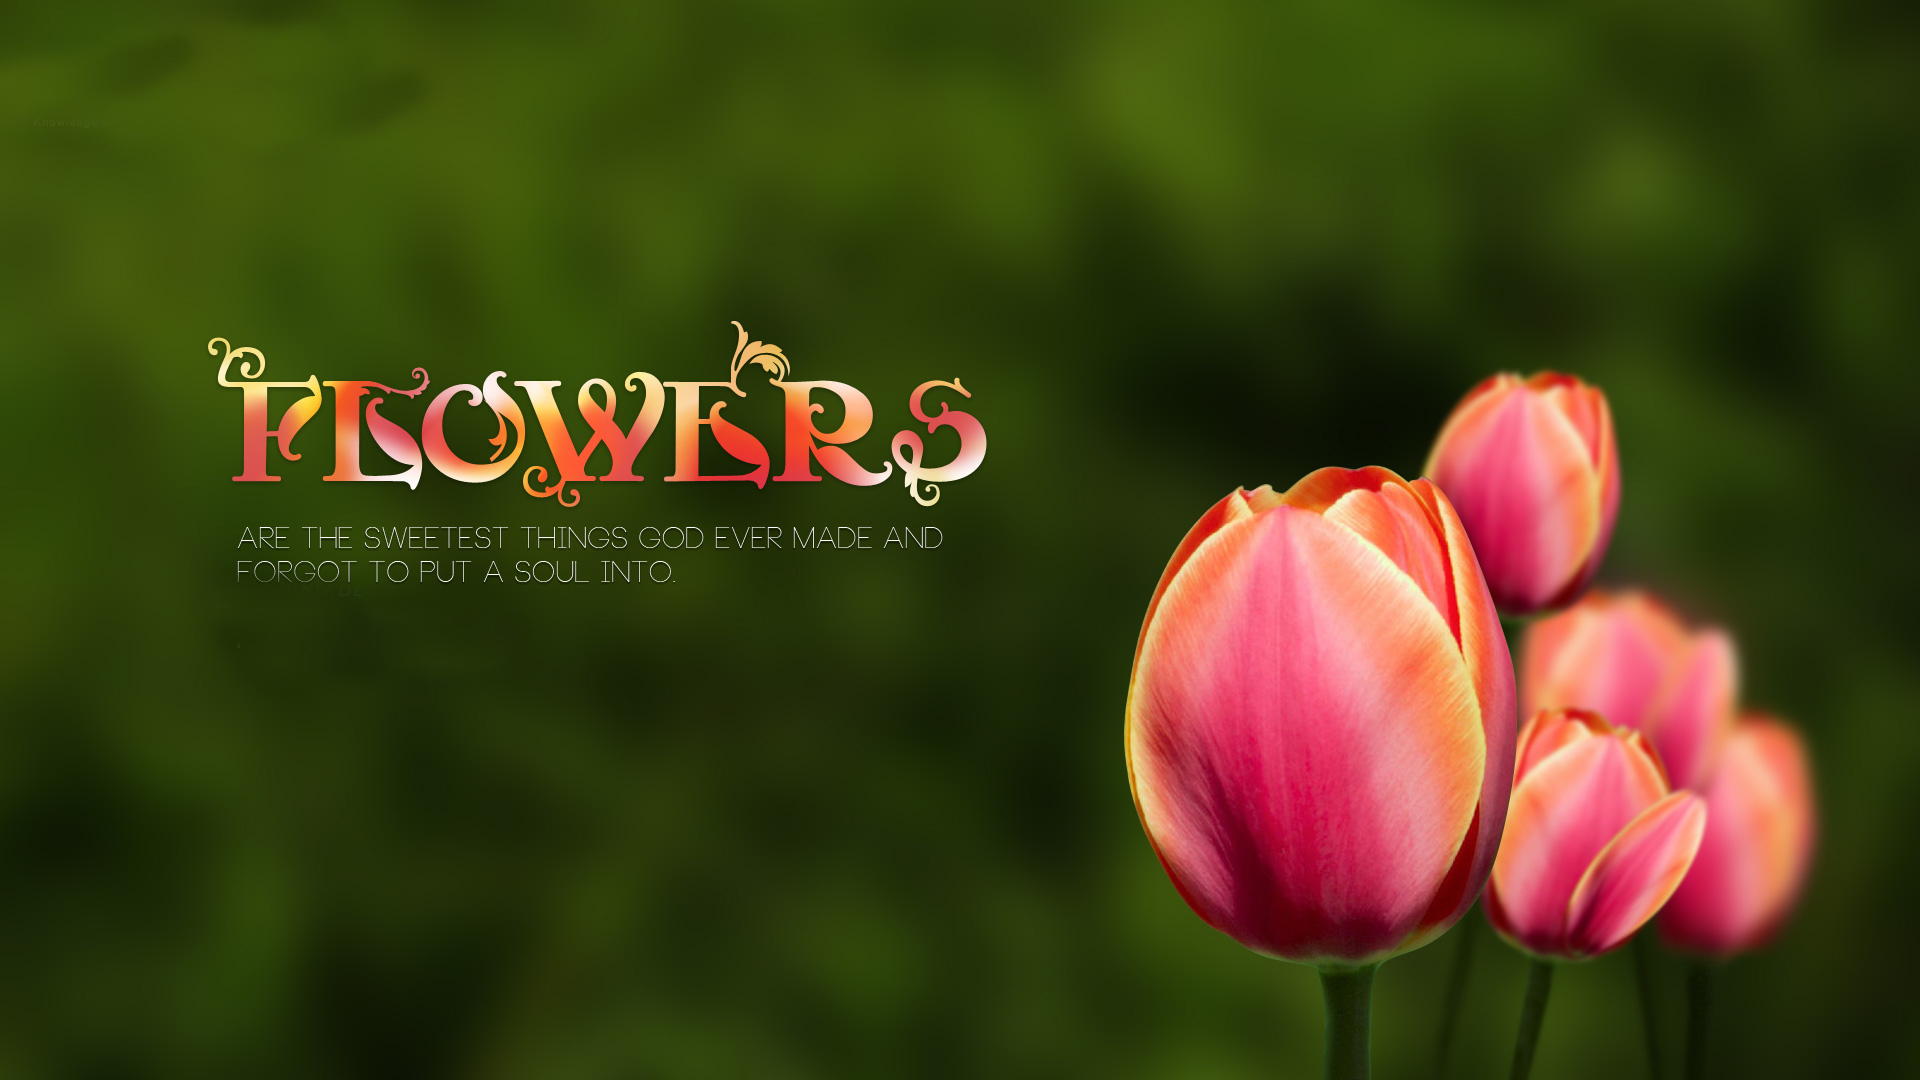 Flower wallpaper quotes 22 background hdflowerwallpaper flower wallpaper quotes 22 background izmirmasajfo Choice Image